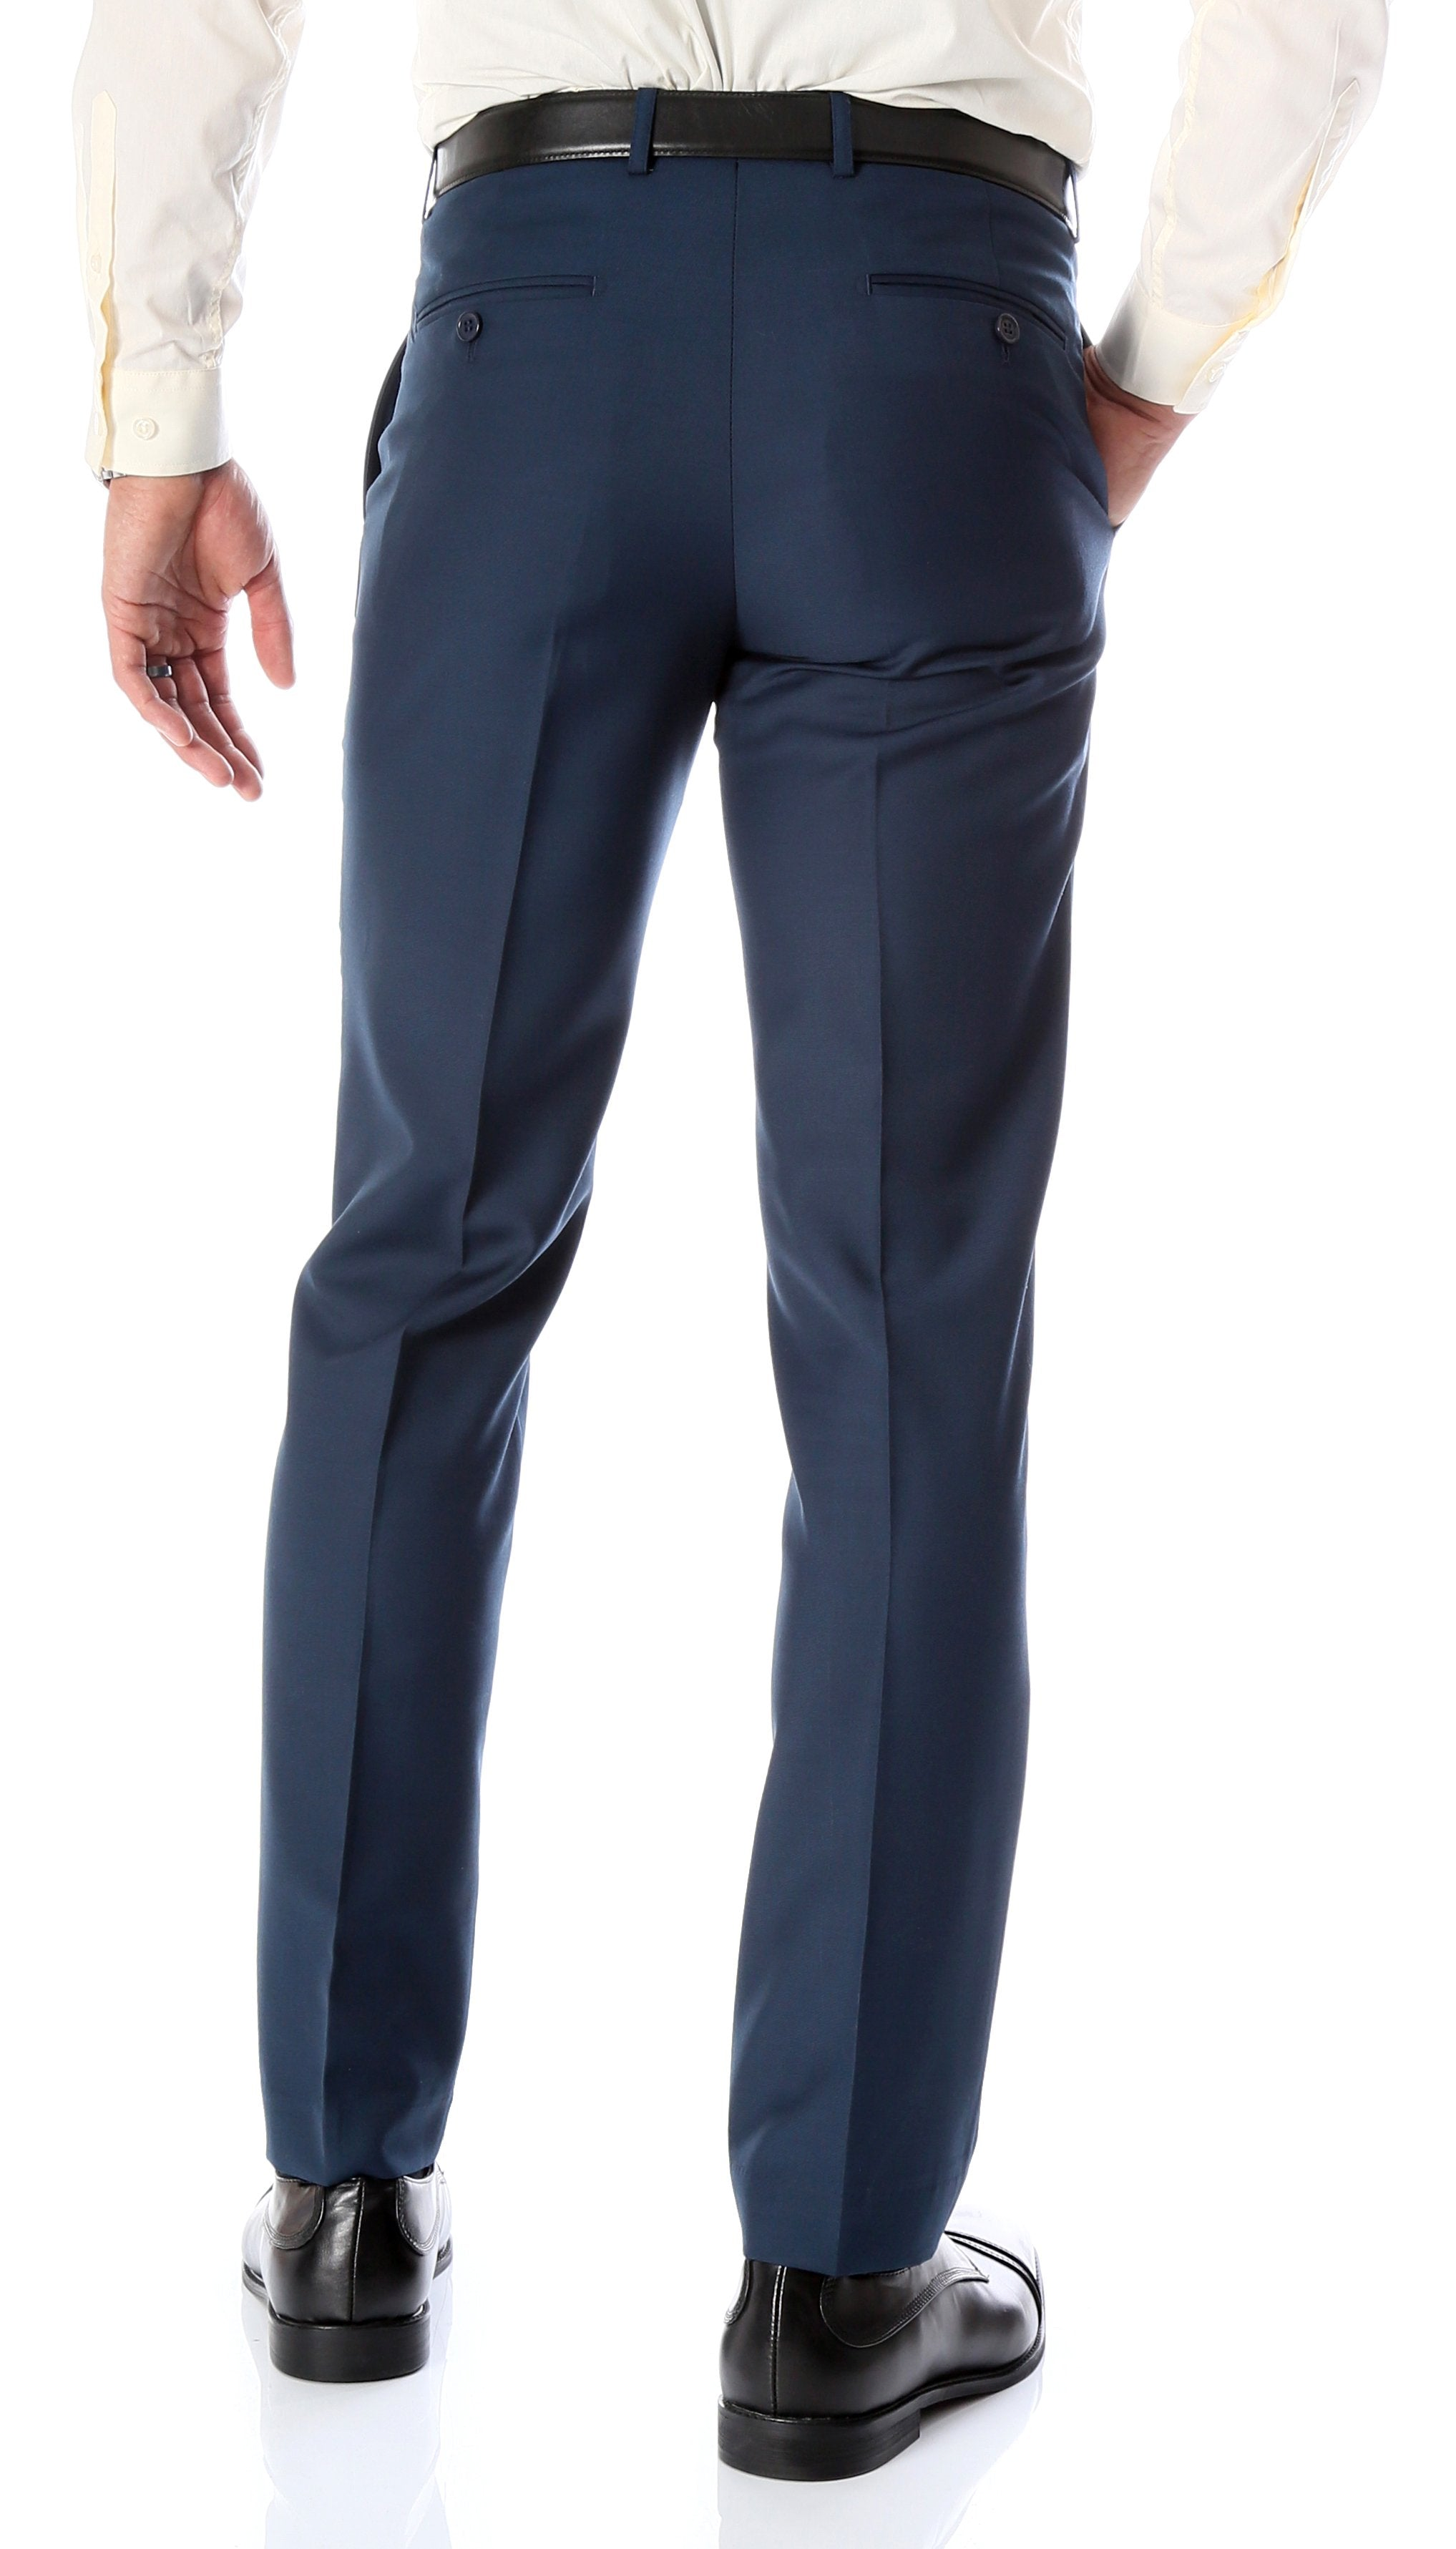 Ferrecci Men's Halo Navy Slim Fit Flat-Front Dress Pants - Giorgio's Menswear